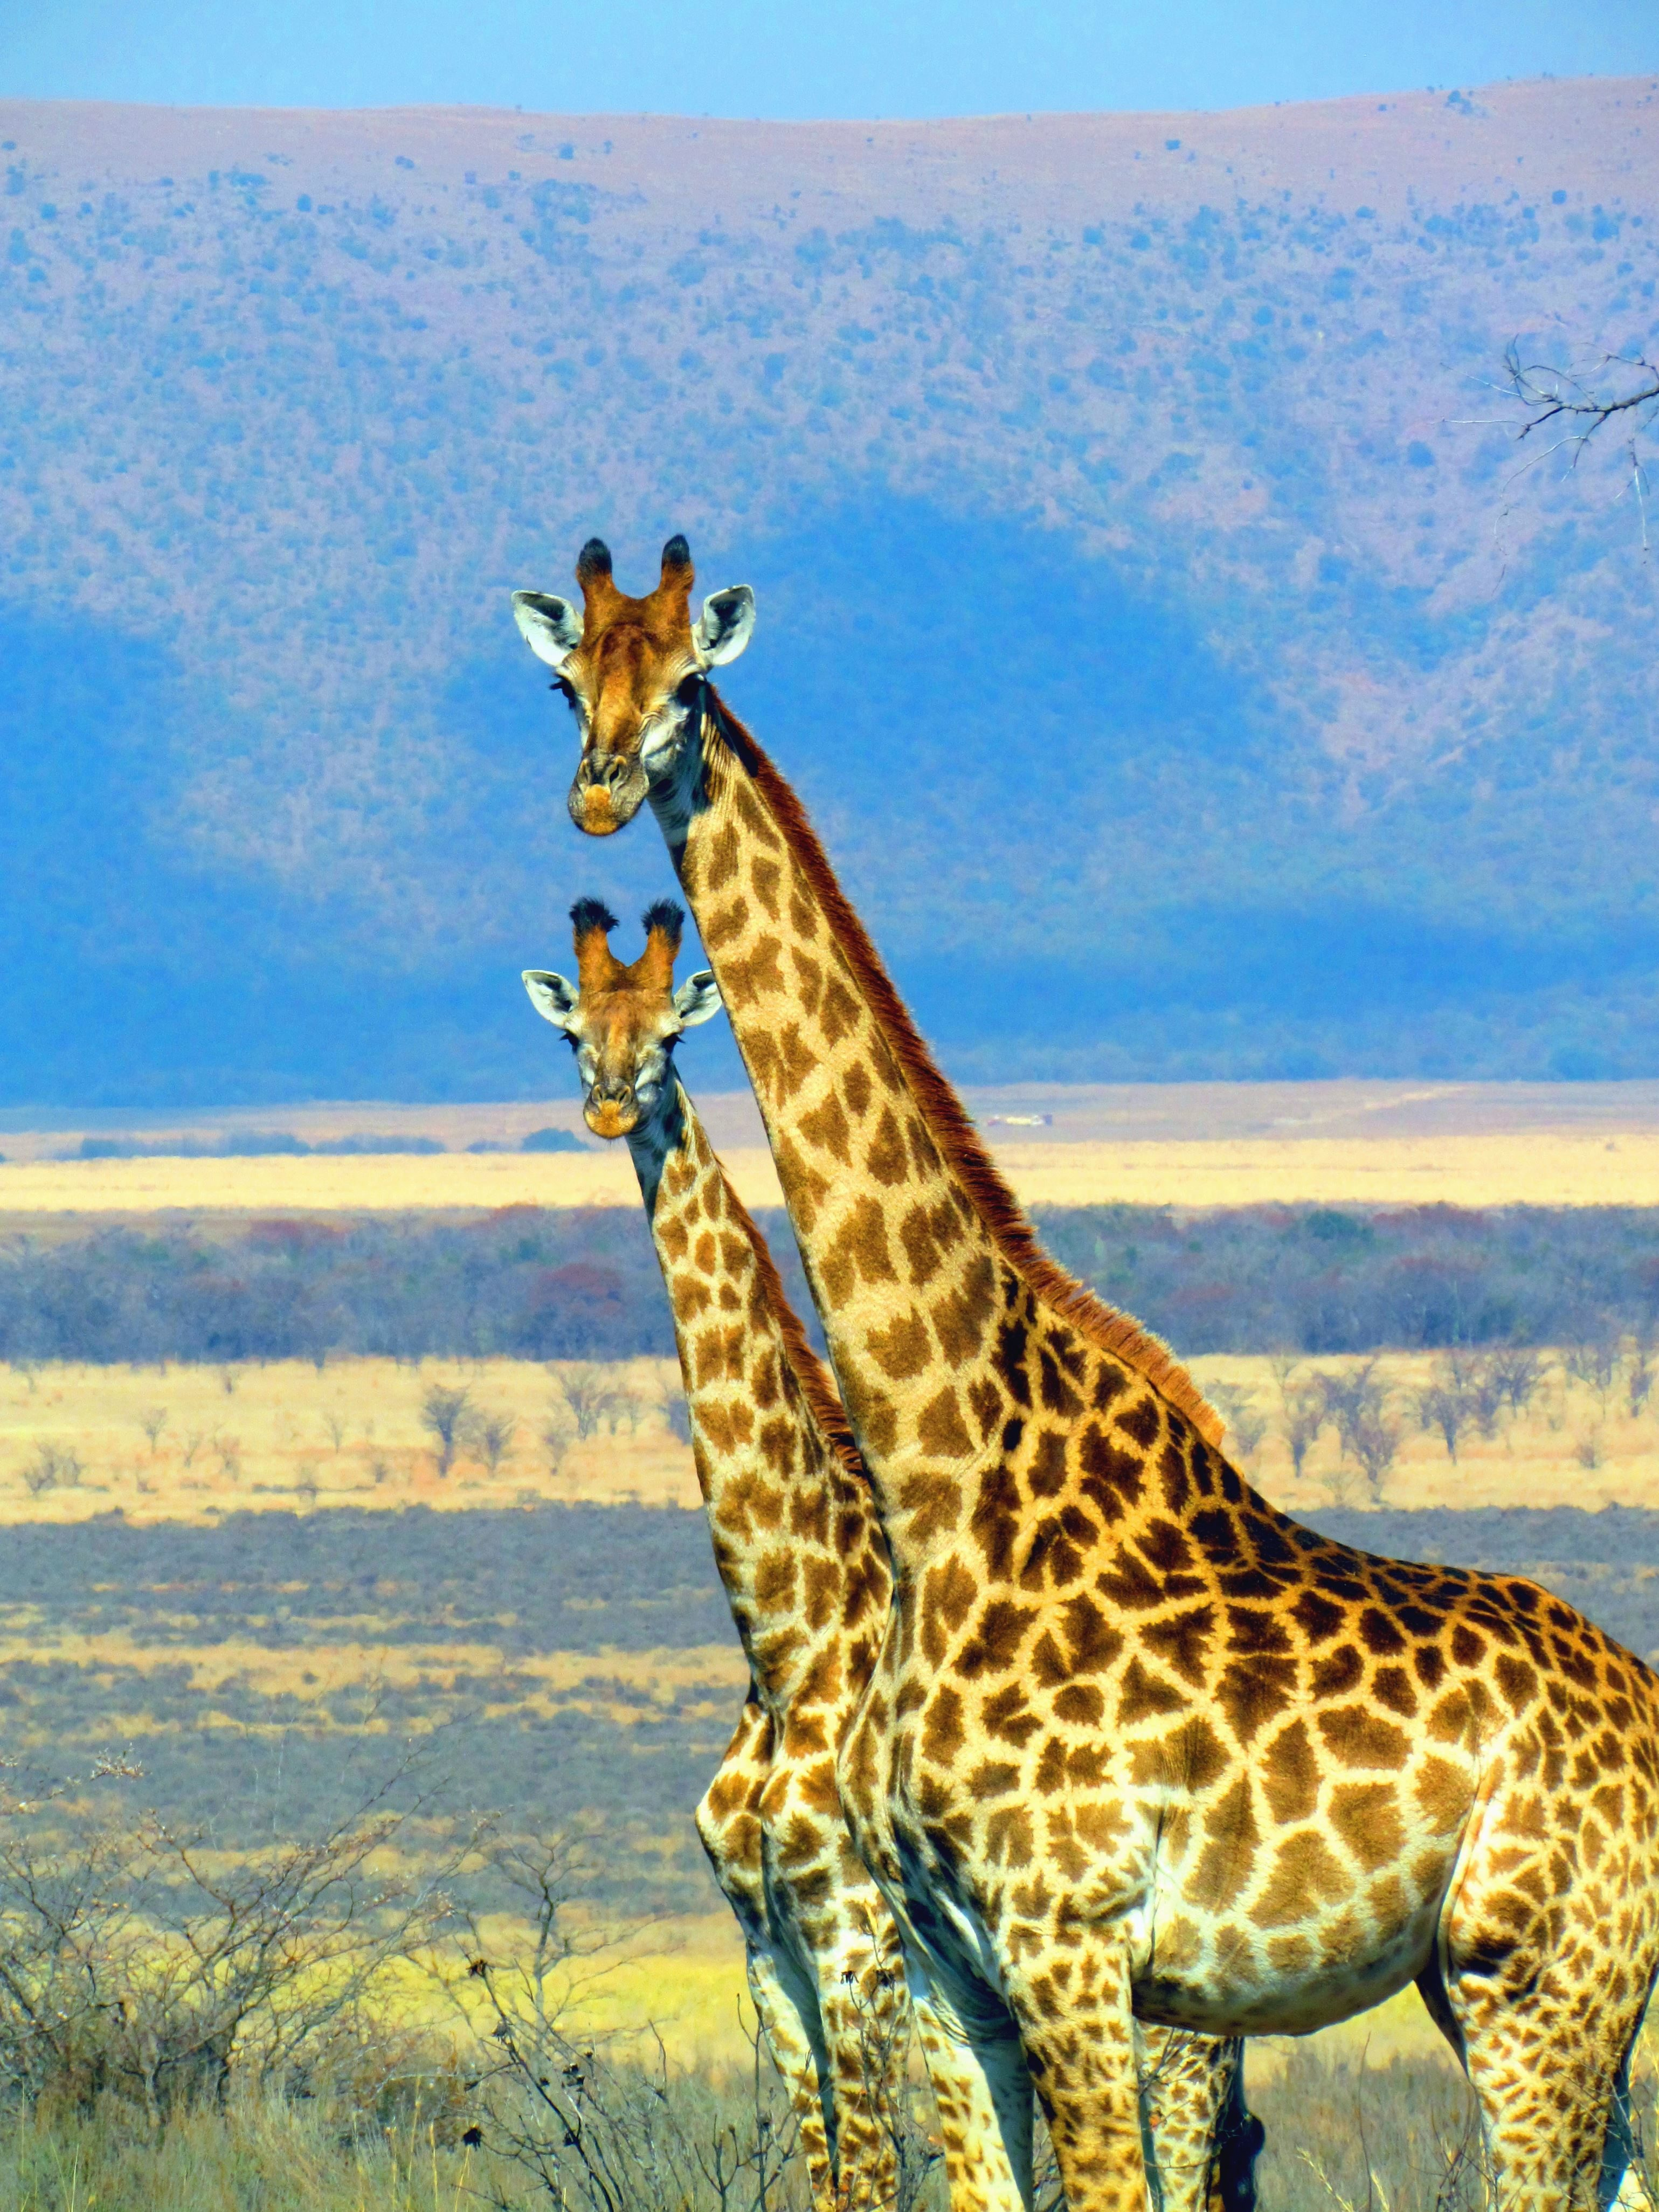 Image libre Girafe animal Afrique montagne nature herbe